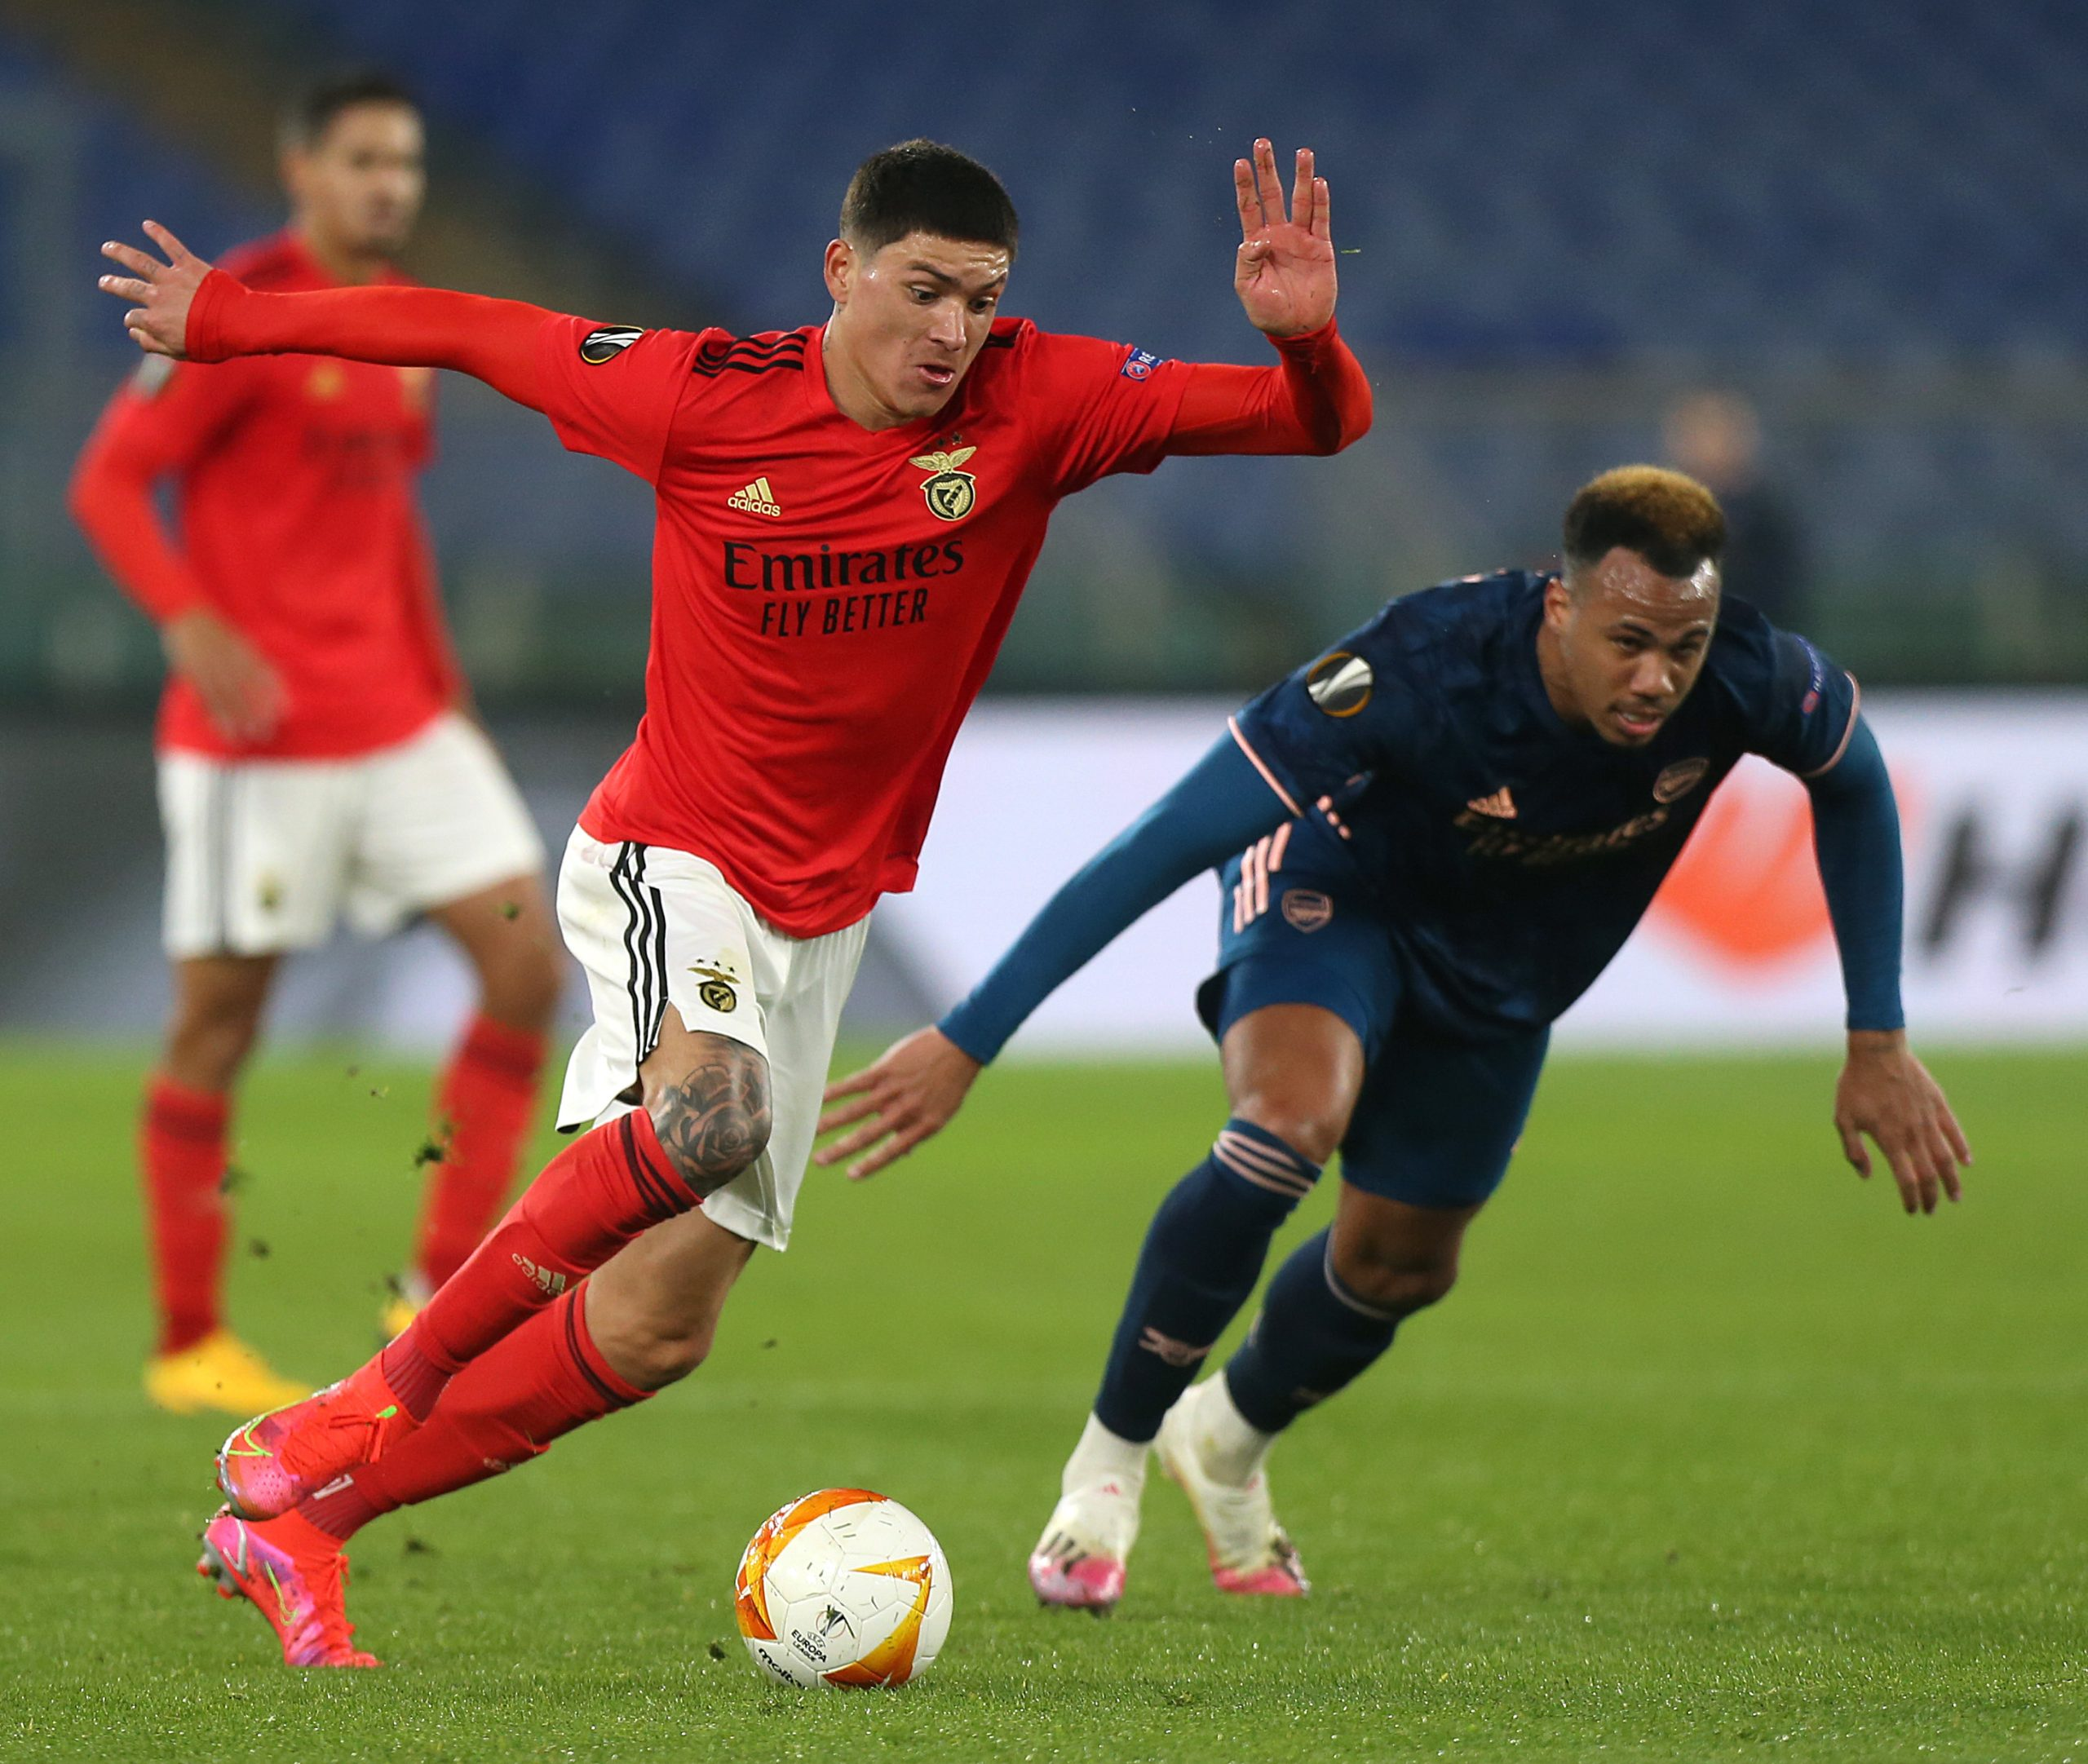 Darwin Nunez in action against Arsenal. (Photo by Paolo Bruno/Getty Images)